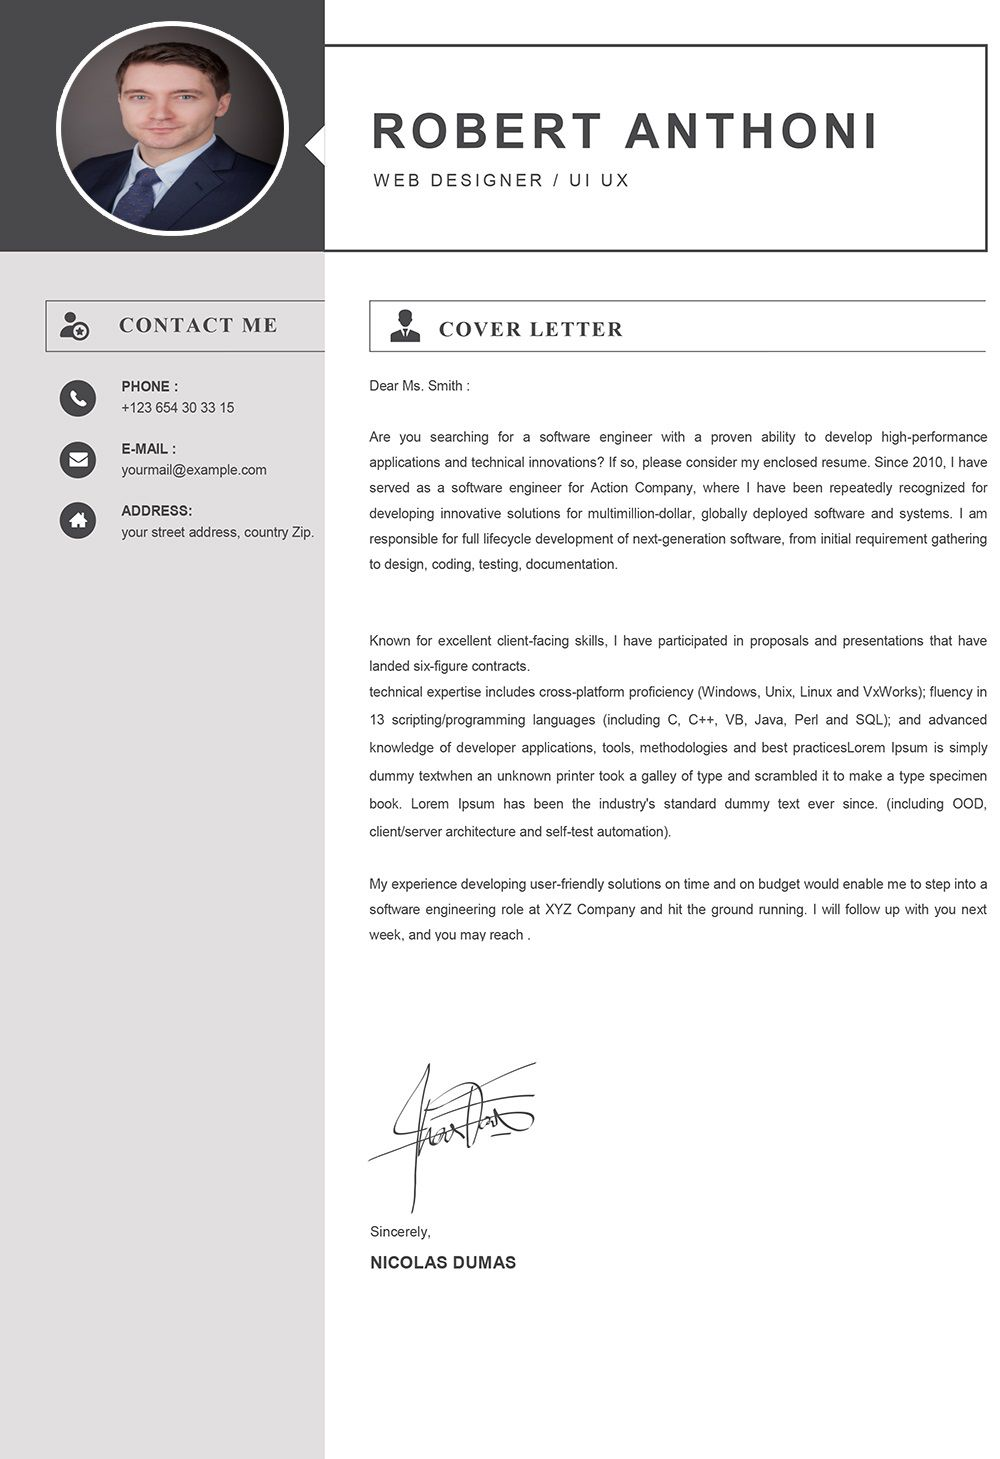 003 Simple Window Resume Cover Letter Template High Resolution  TemplatesFull